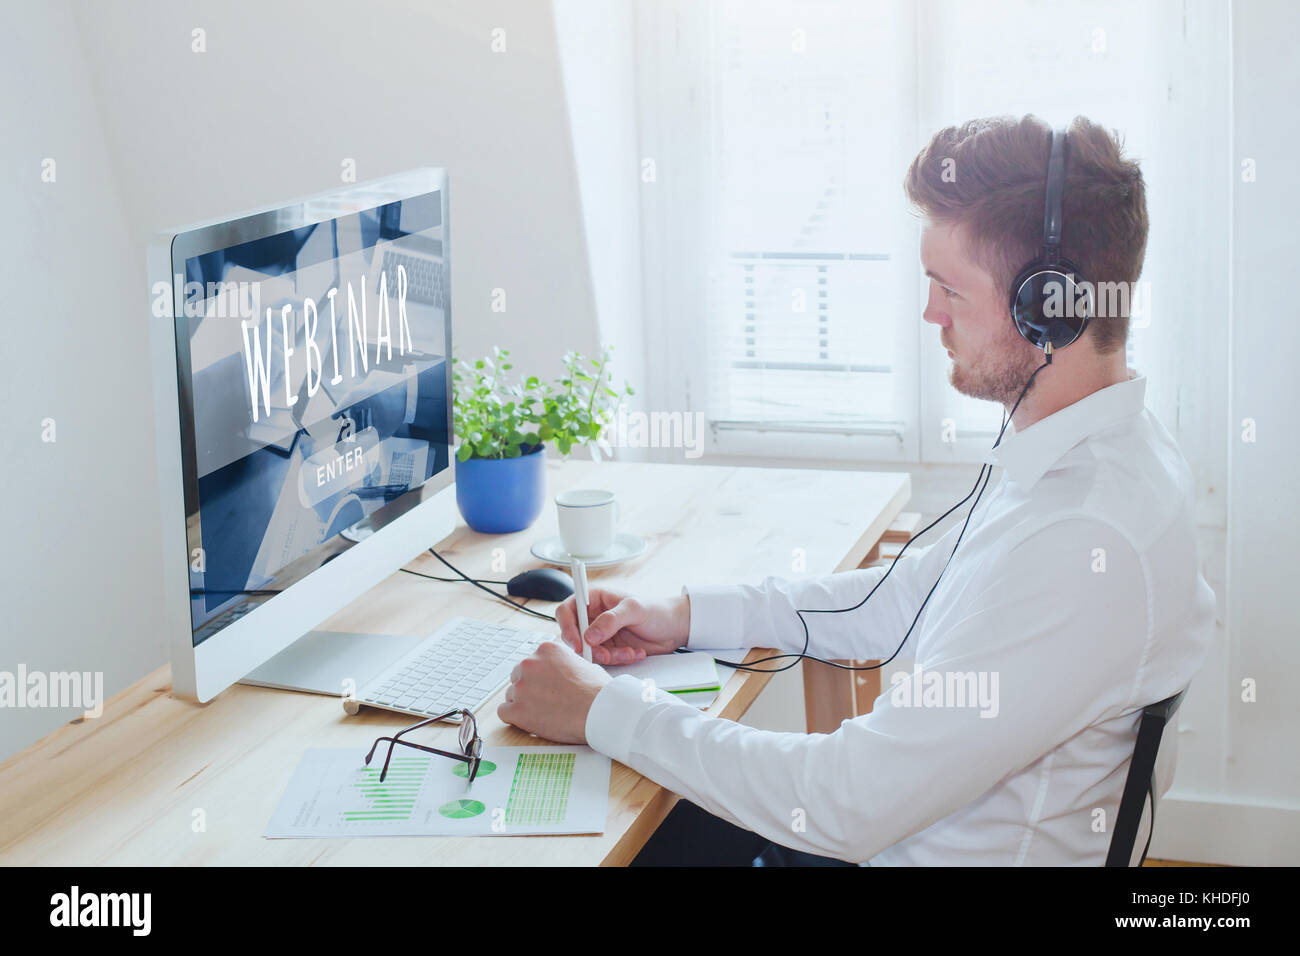 businessman participating webinar online, education on internet, e-learning concept Stock Photo